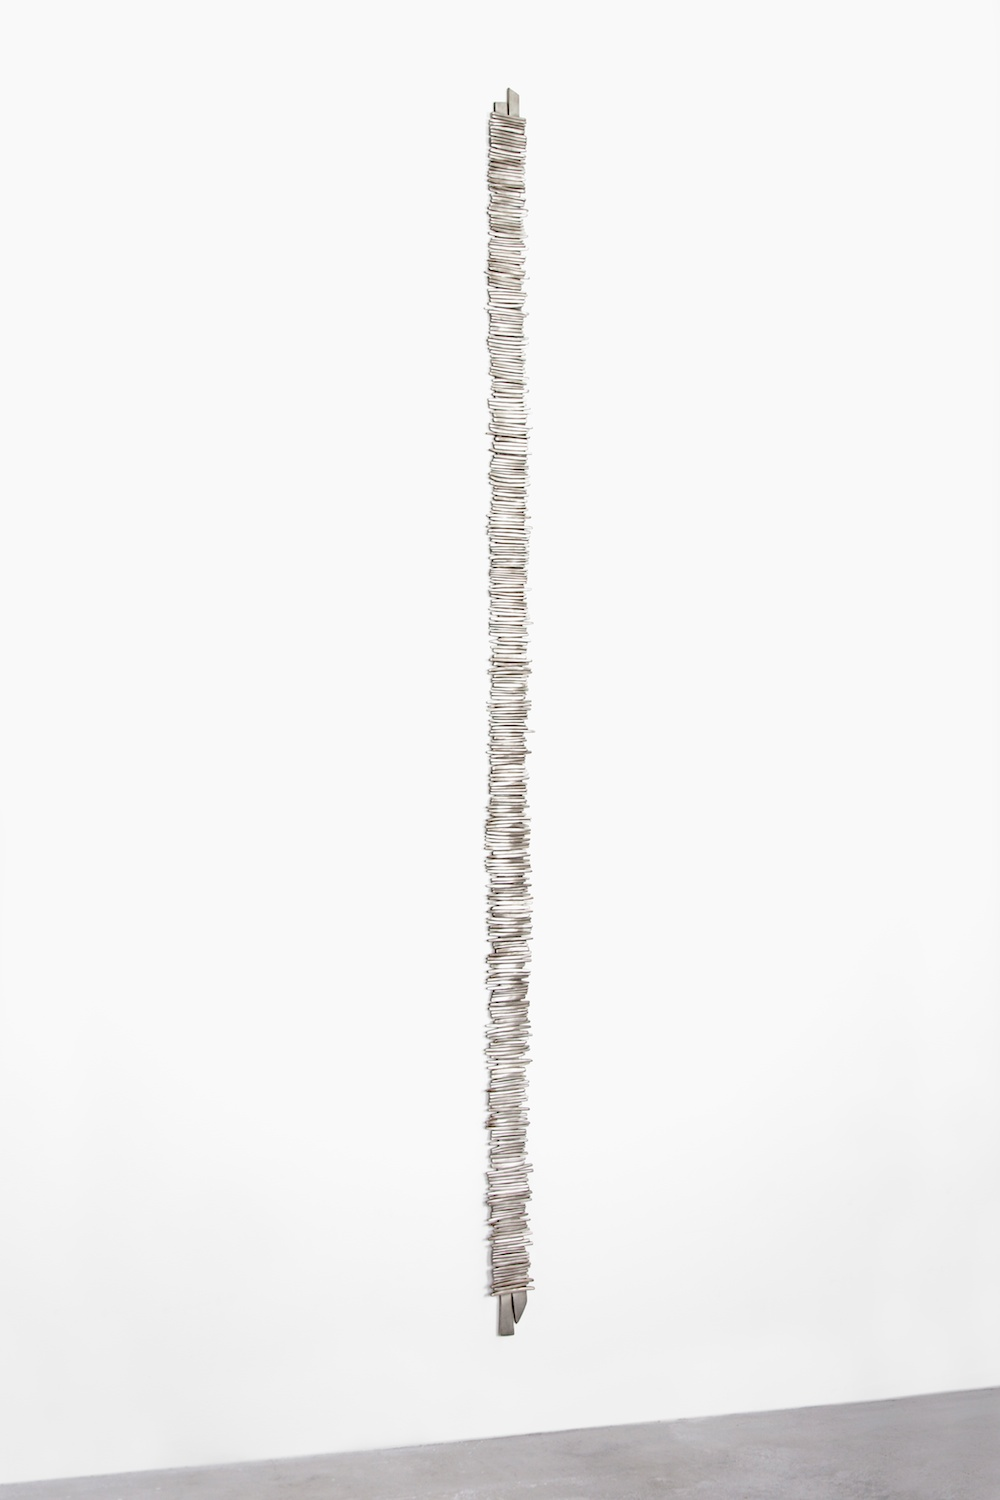 Anthony Pearson  Untitled (Tablet)  2012 Bronze relief with silver nitrate patina 82h x 3 ¼w in AP321